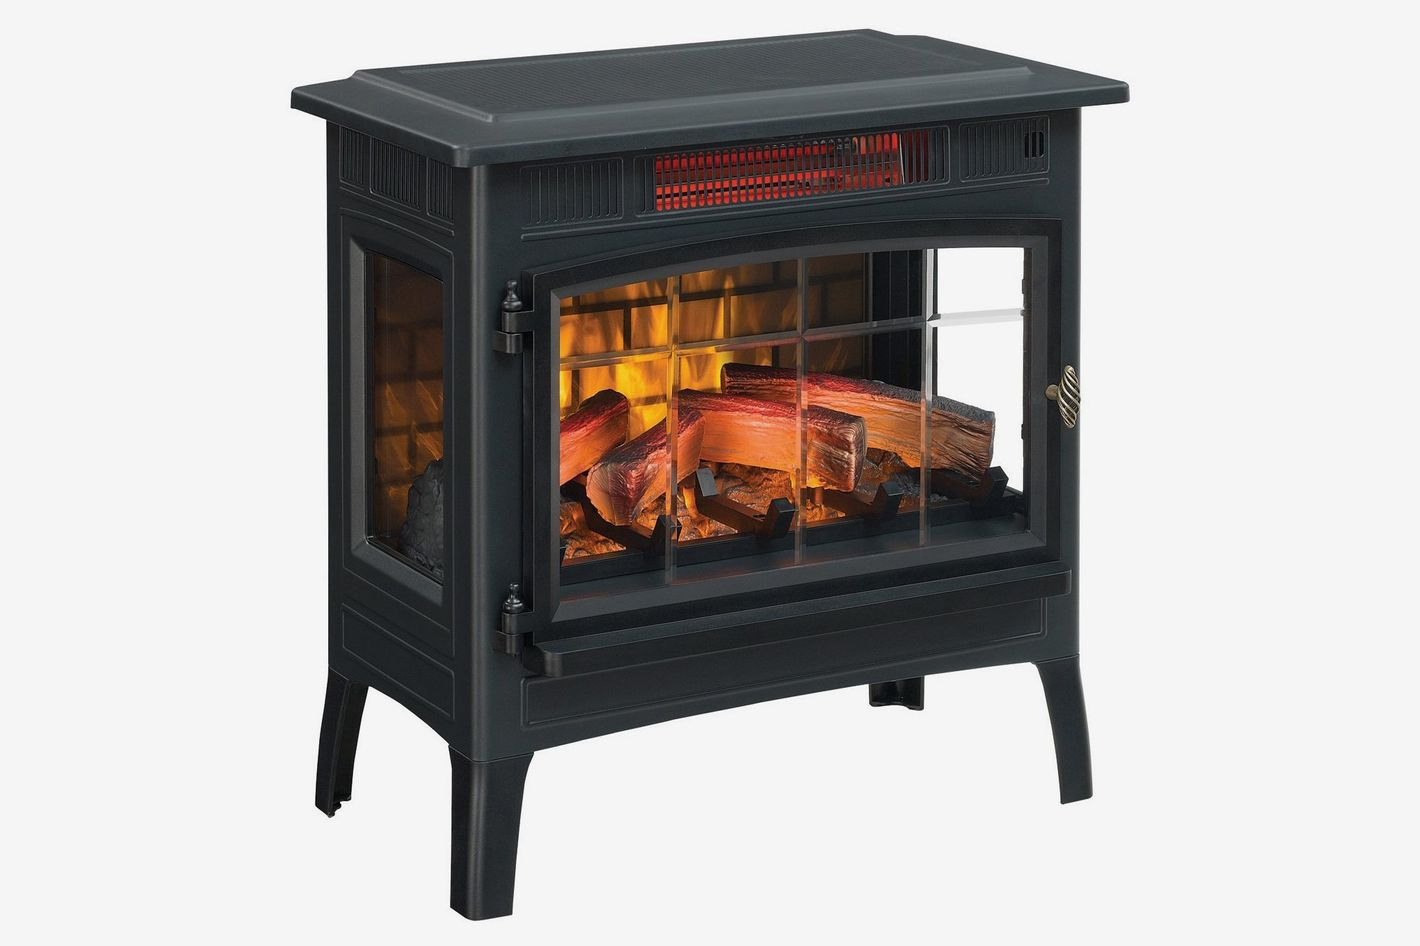 Duraflame  Infrared Quartz Fireplace Stove With 3D Flame Effect and Remote Control